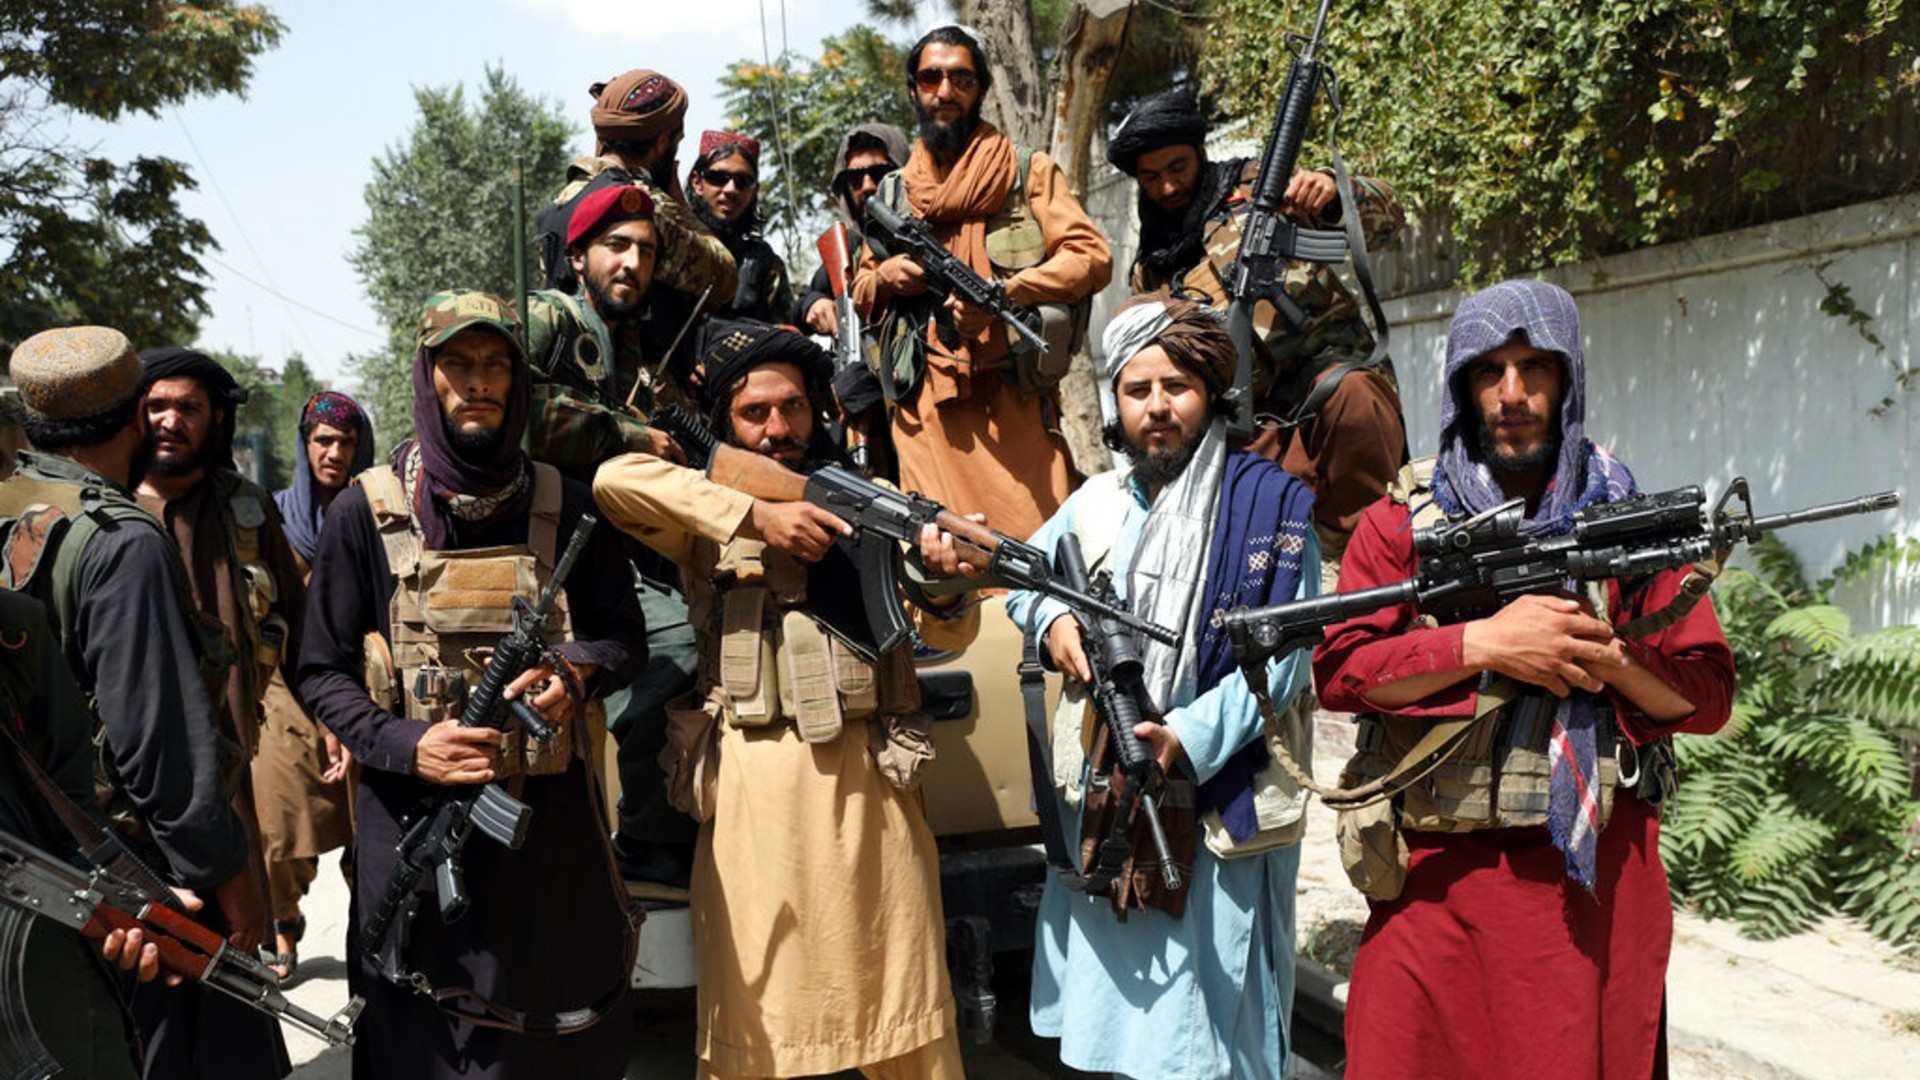 Taliban fighters pose for a photograph in Kabul, Afghanistan, Thursday, Aug. 19, 2021. (AP Photo/Rahmat Gul)